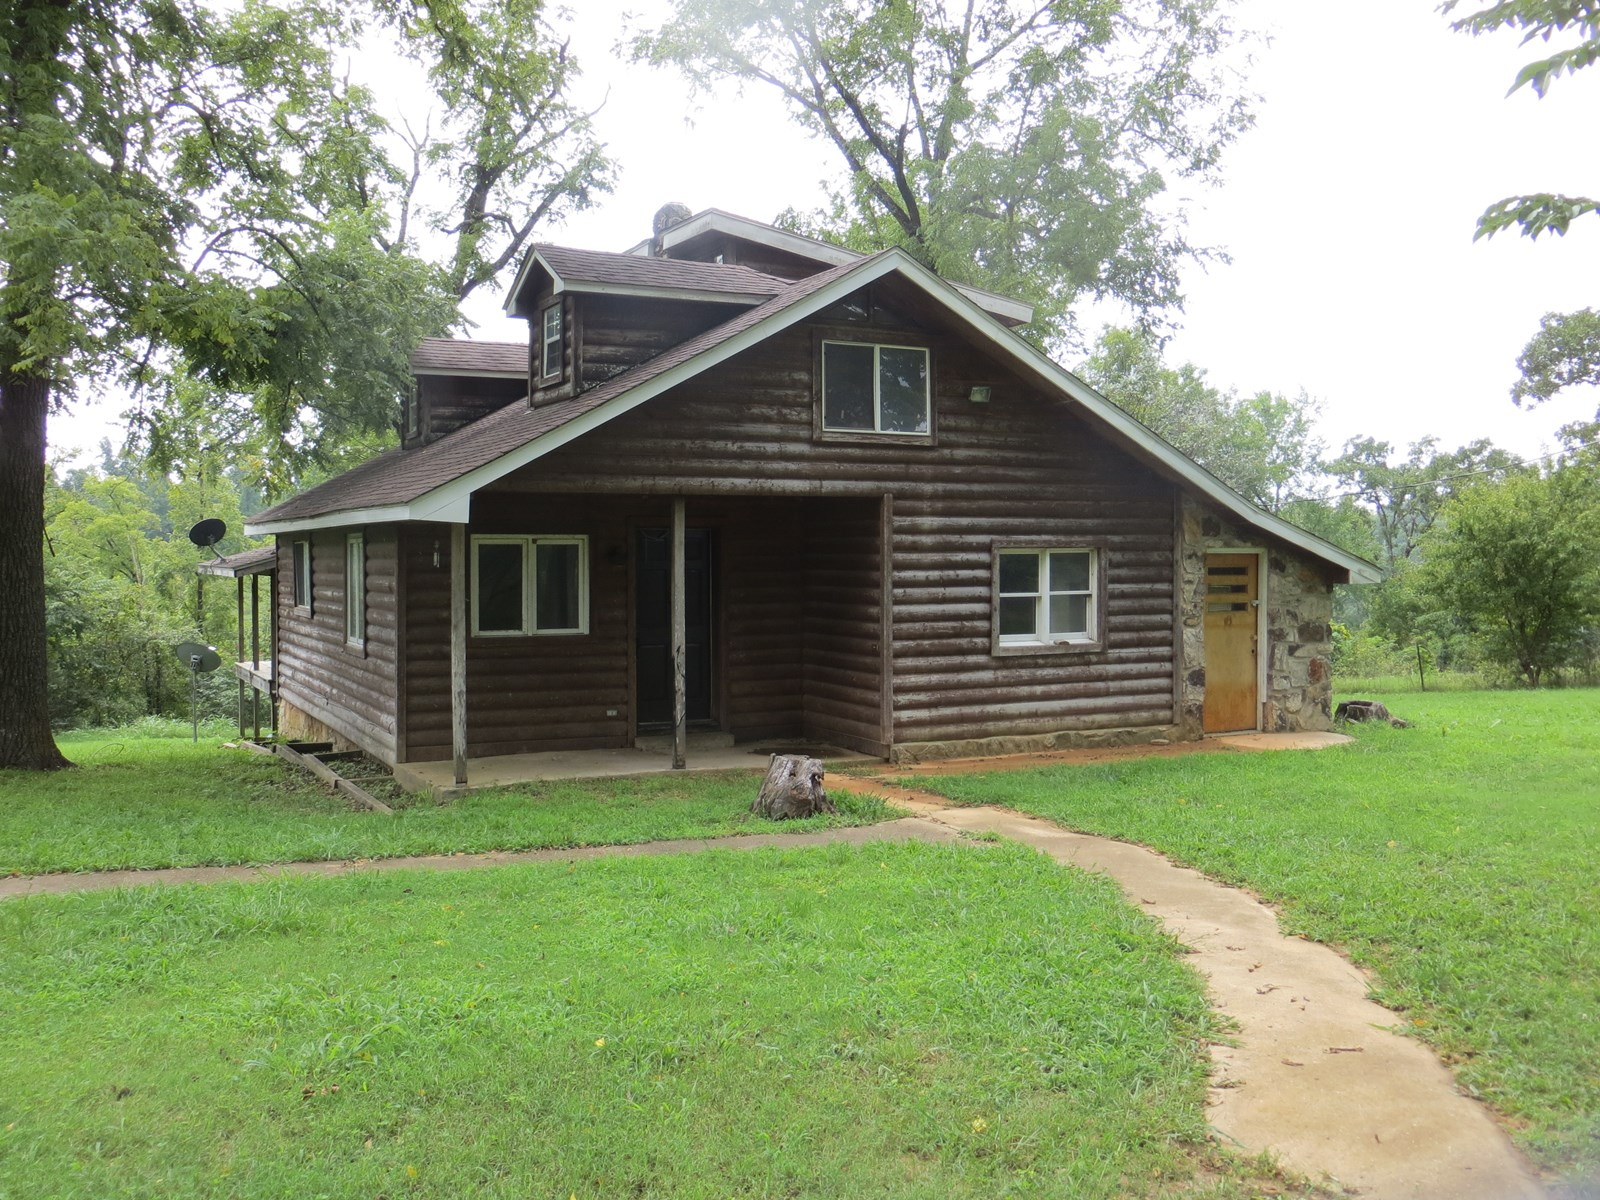 Two Cabins for Sale in Northern Arkansas